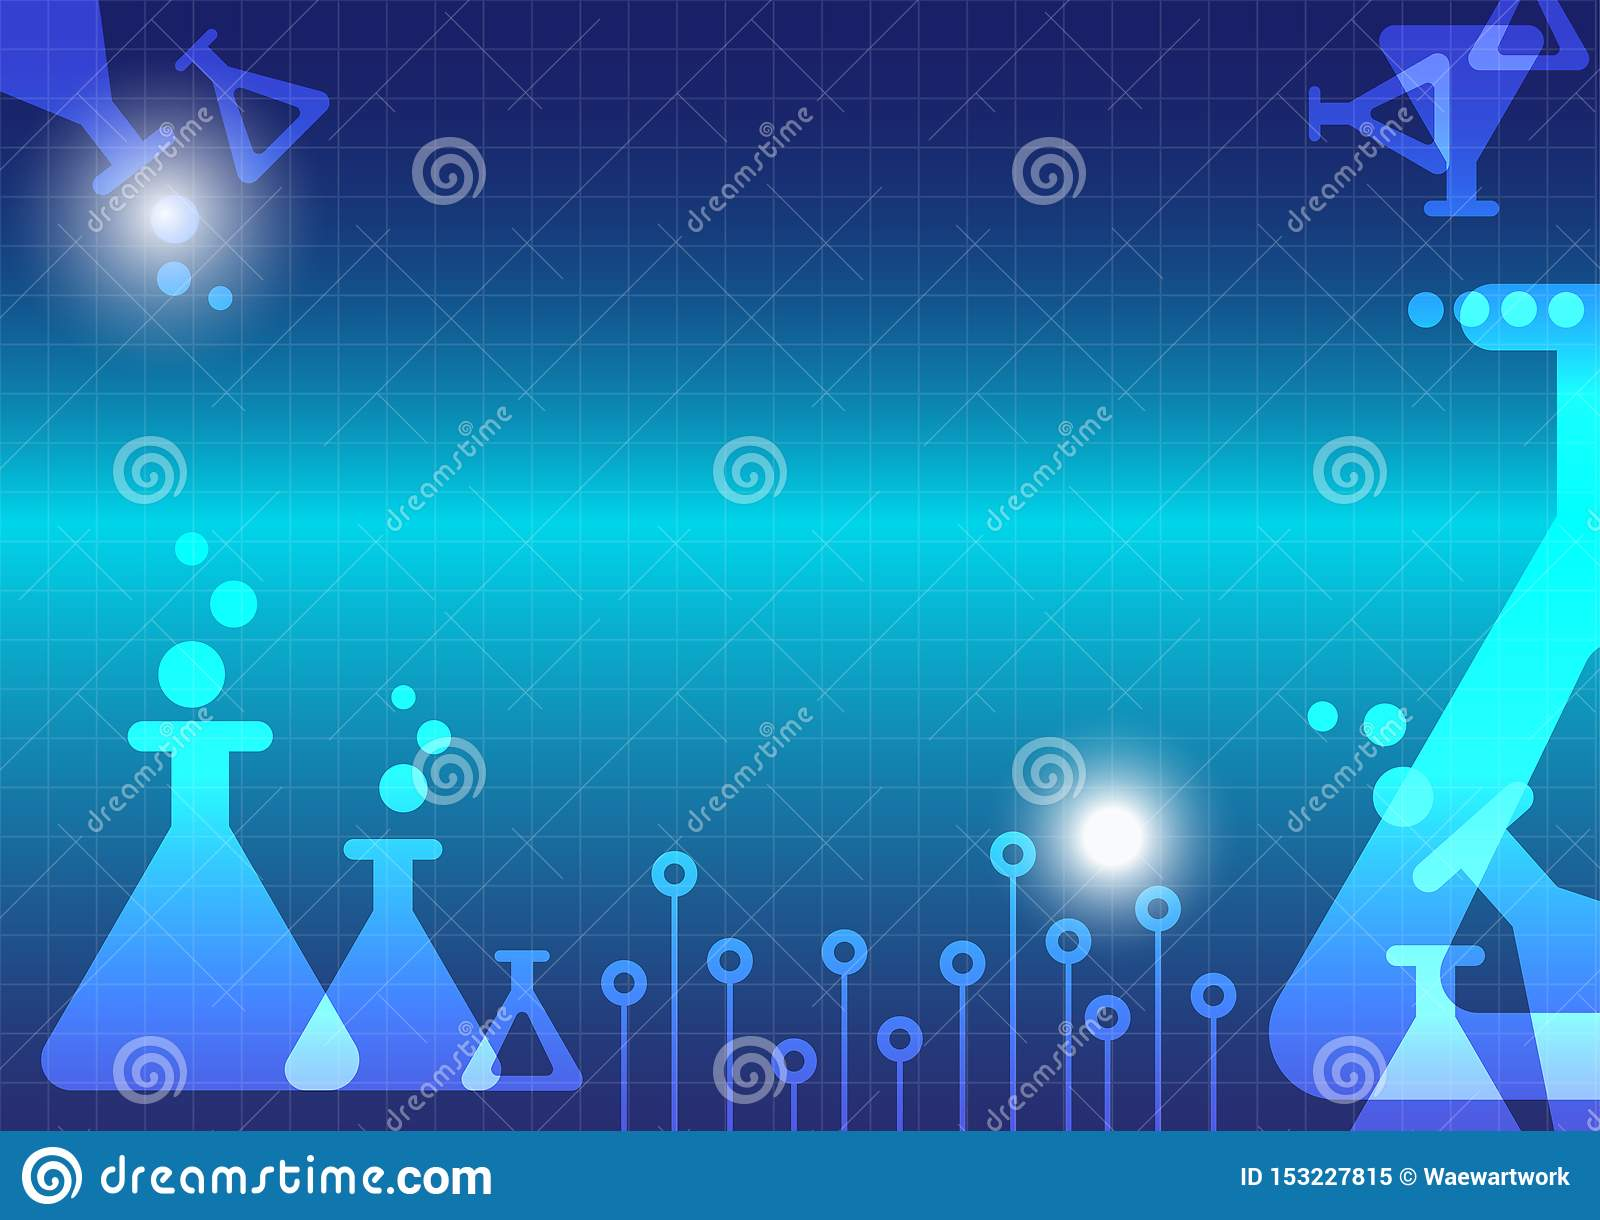 Abstract science experiment erlenmeyer flask background